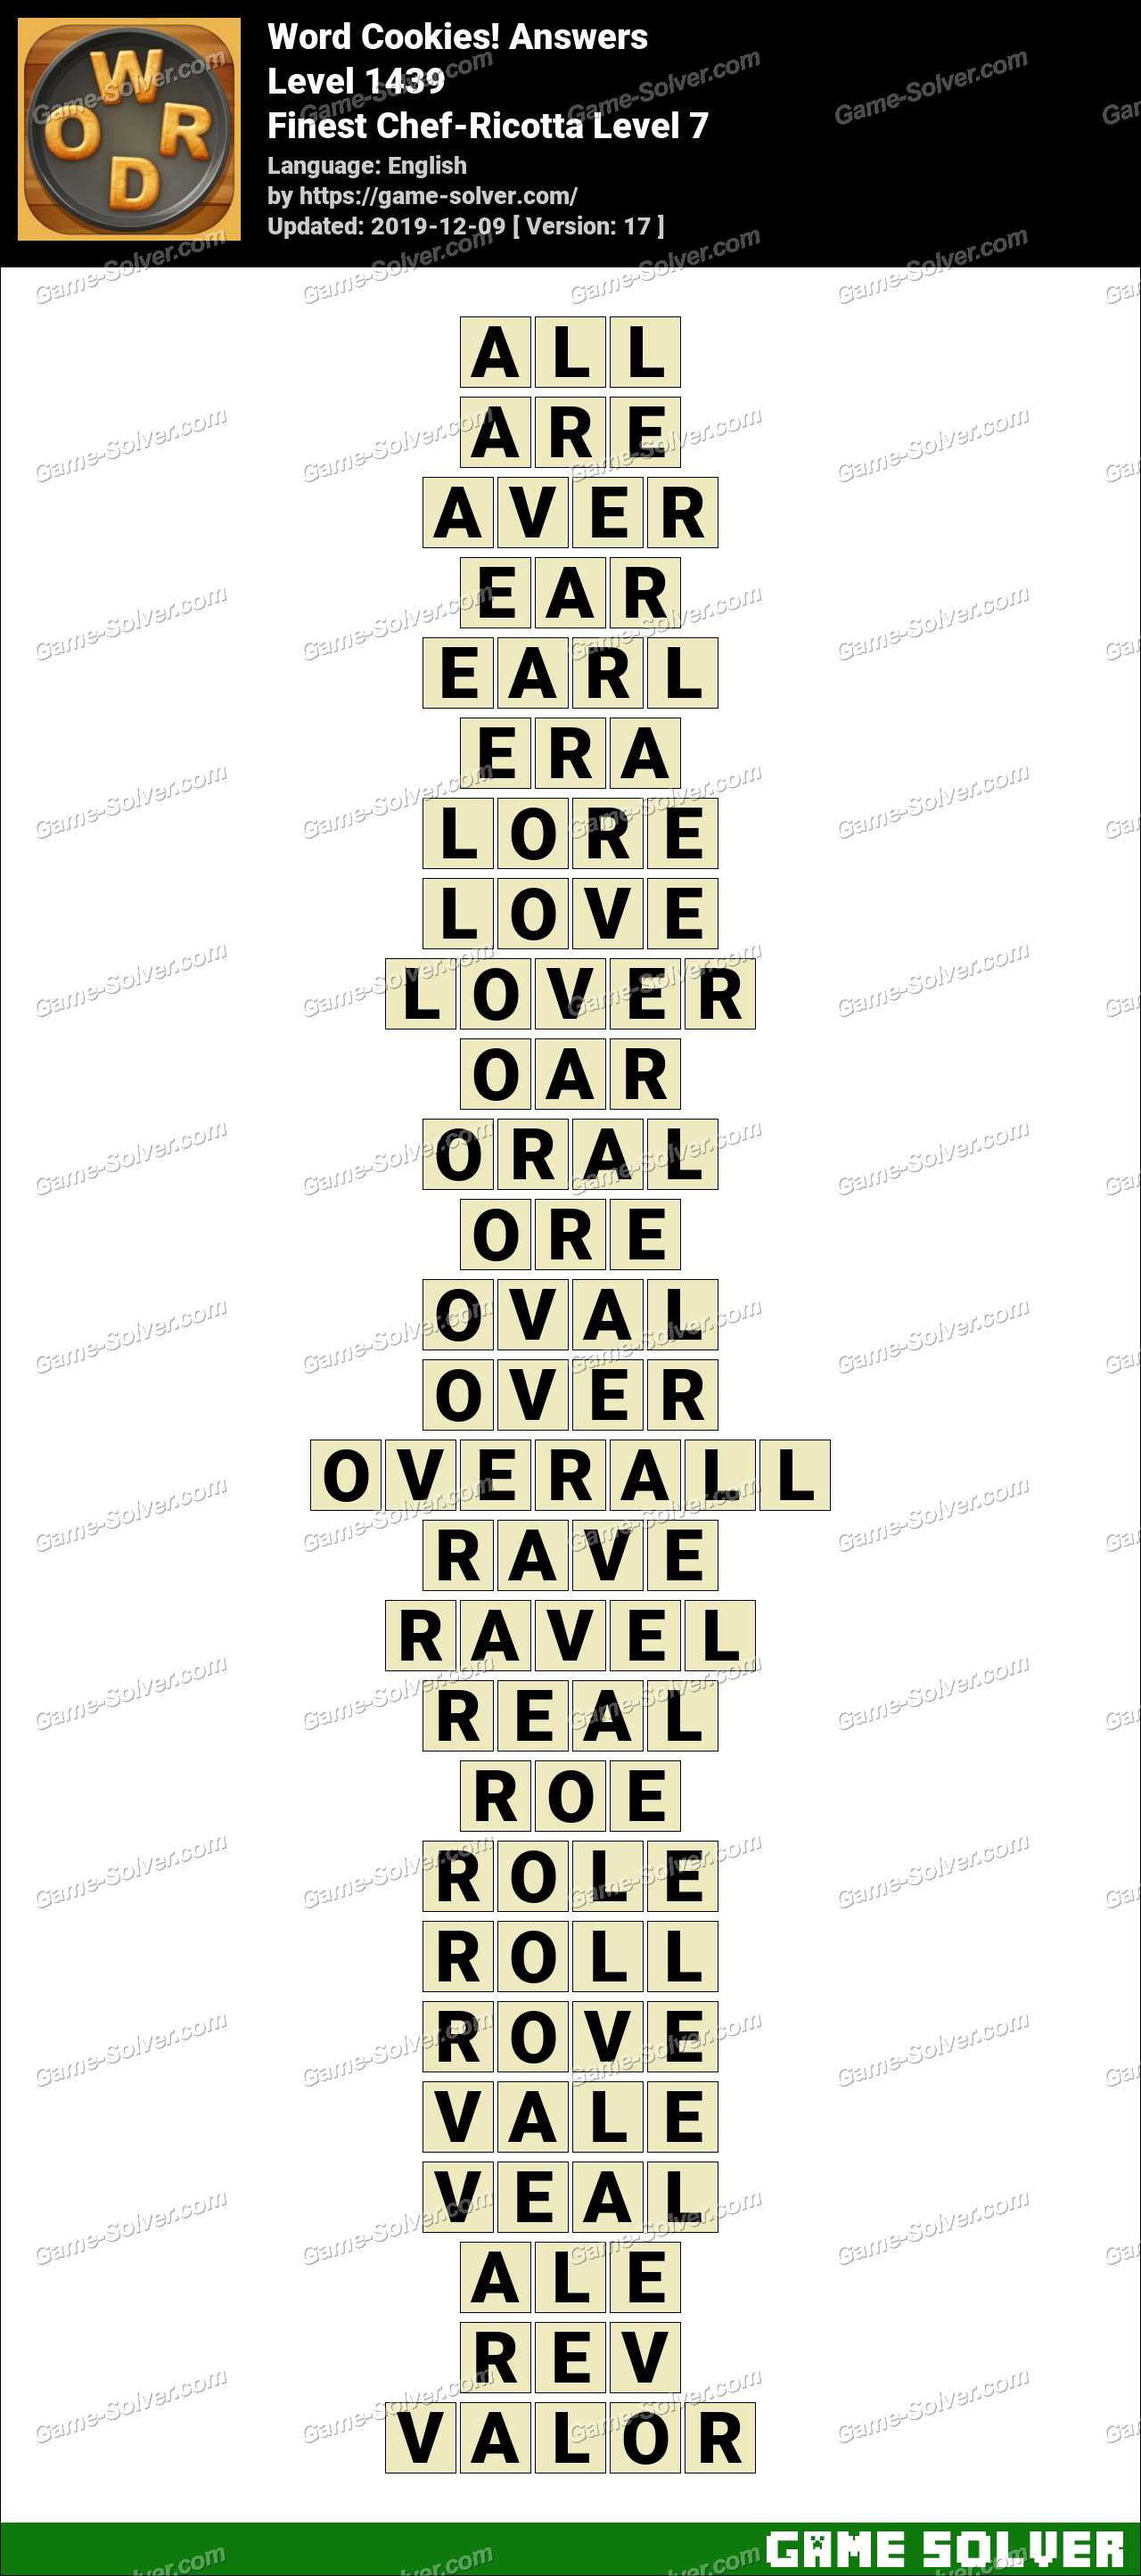 Word Cookies Finest Chef-Ricotta Level 7 Answers